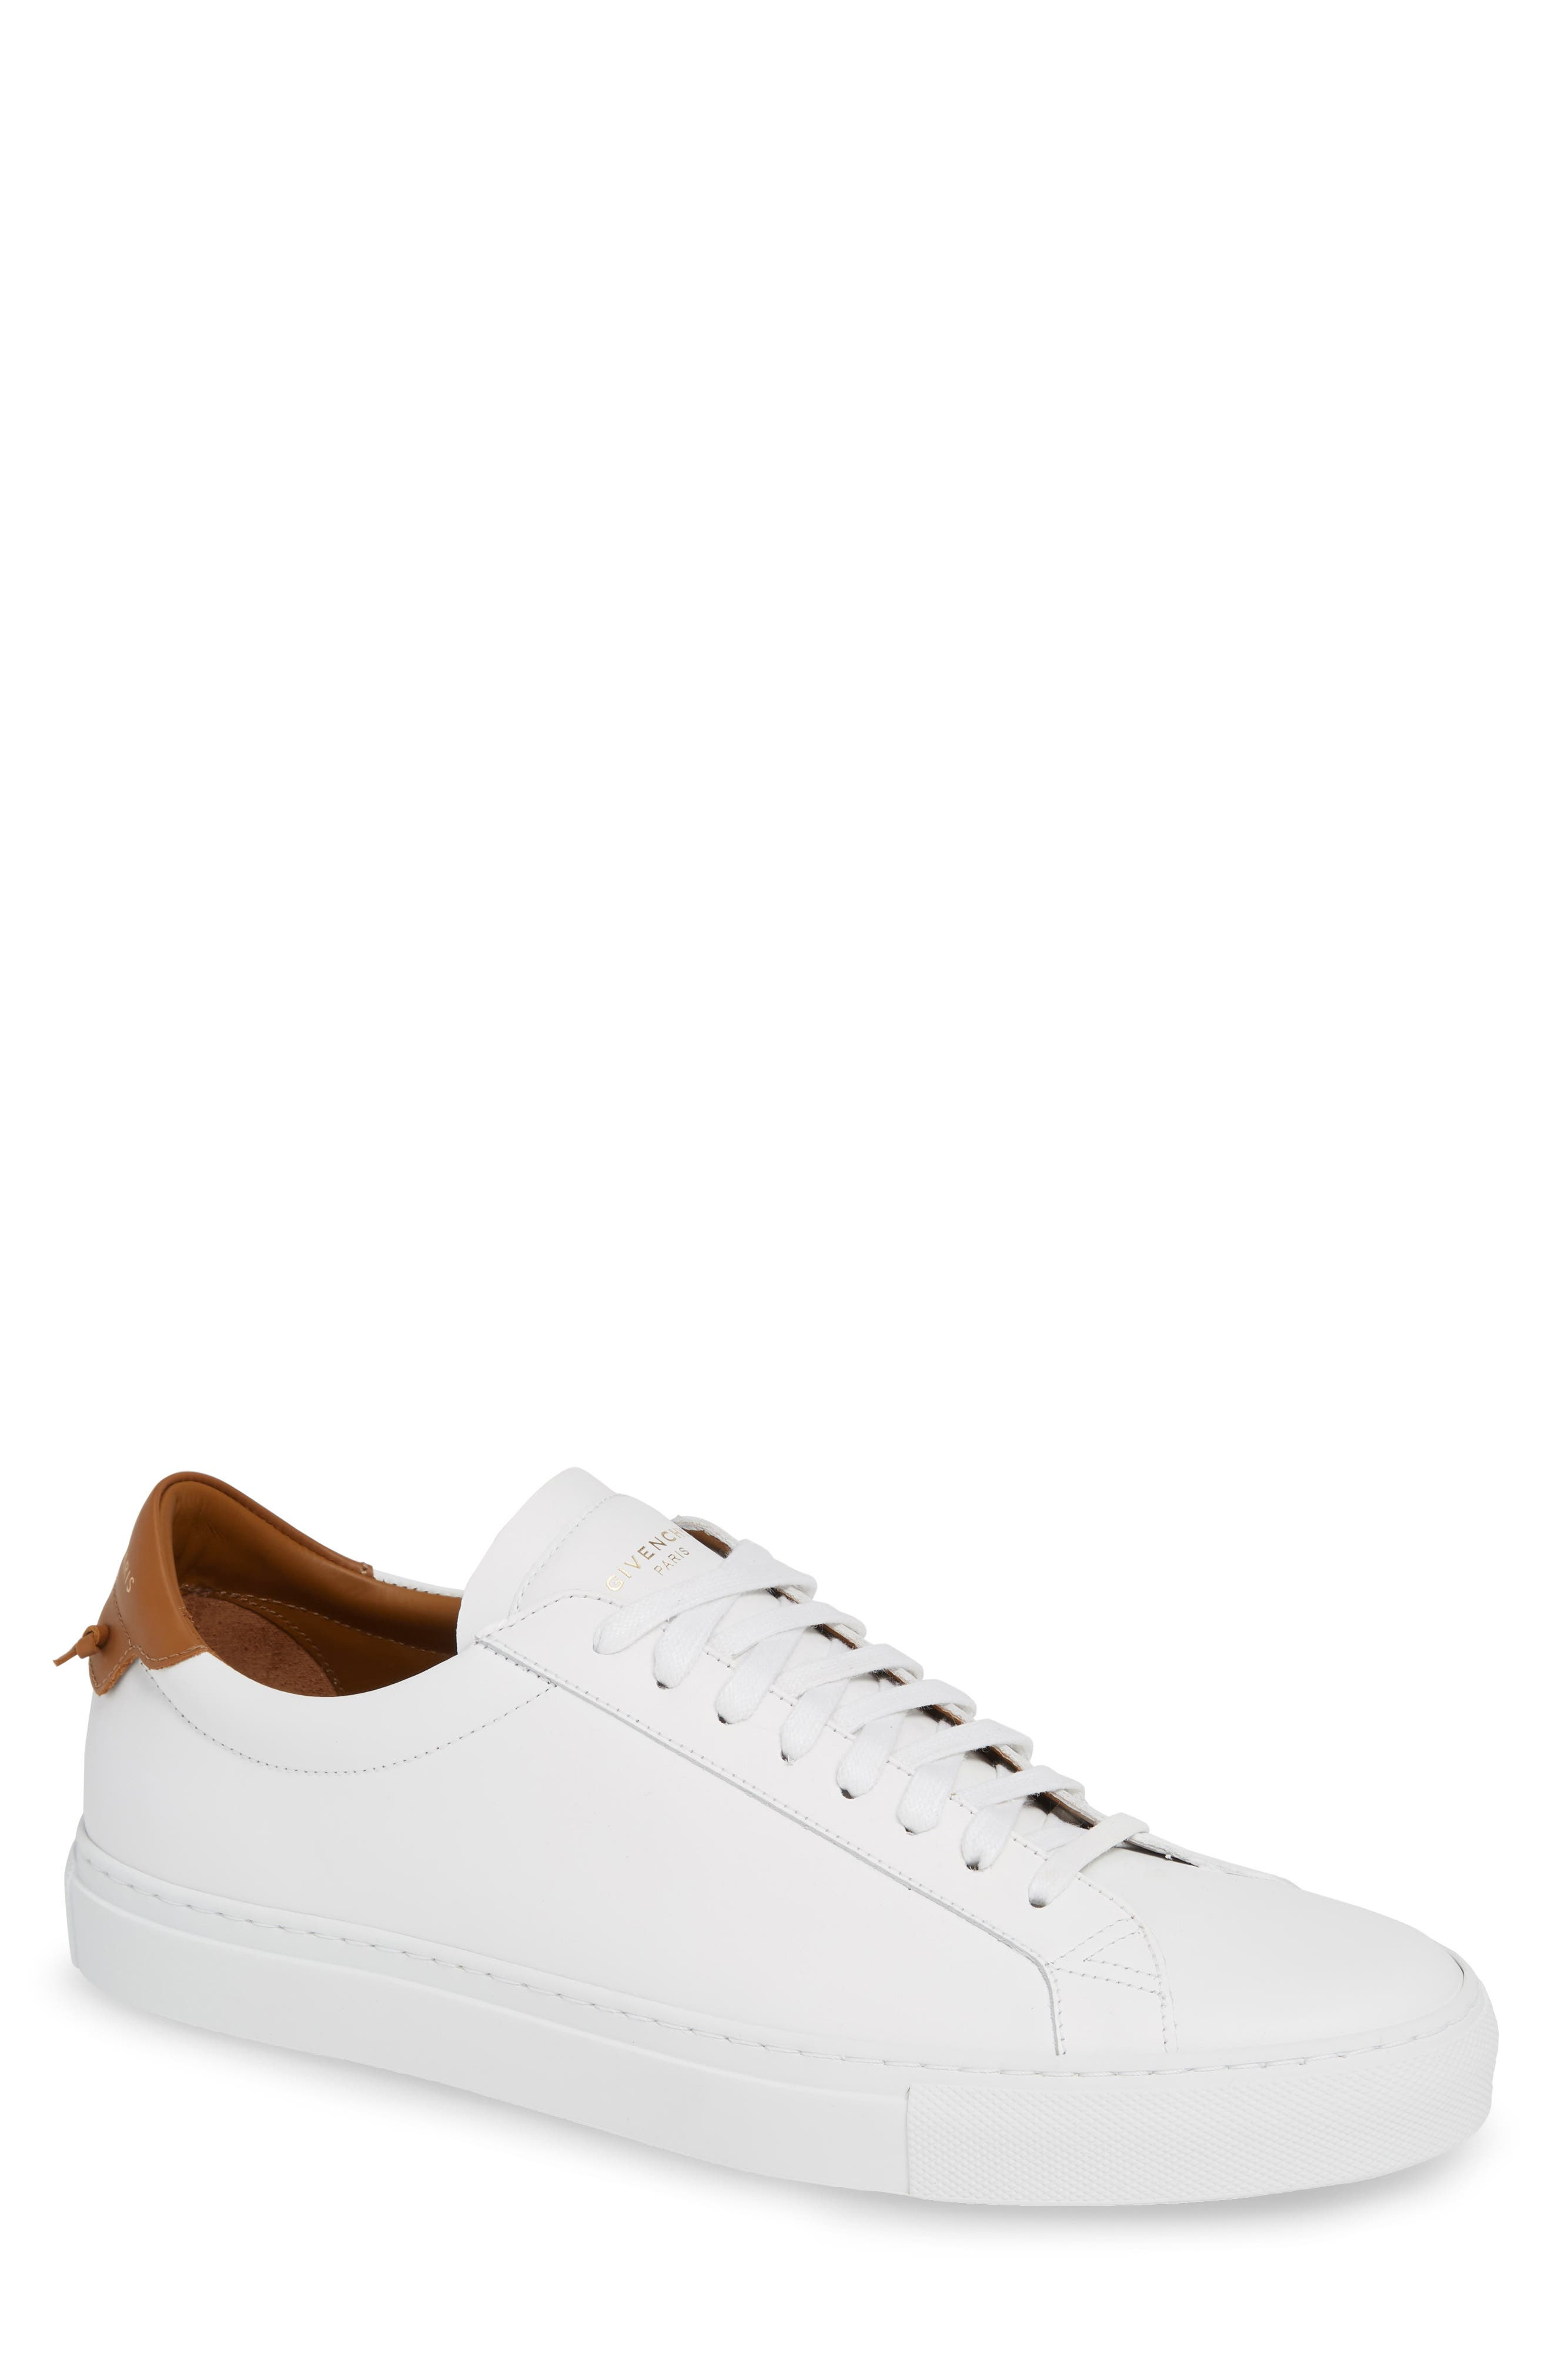 GIVENCHY,                             Urban Knots Low Sneaker,                             Main thumbnail 1, color,                             WHITE/ BEIGE